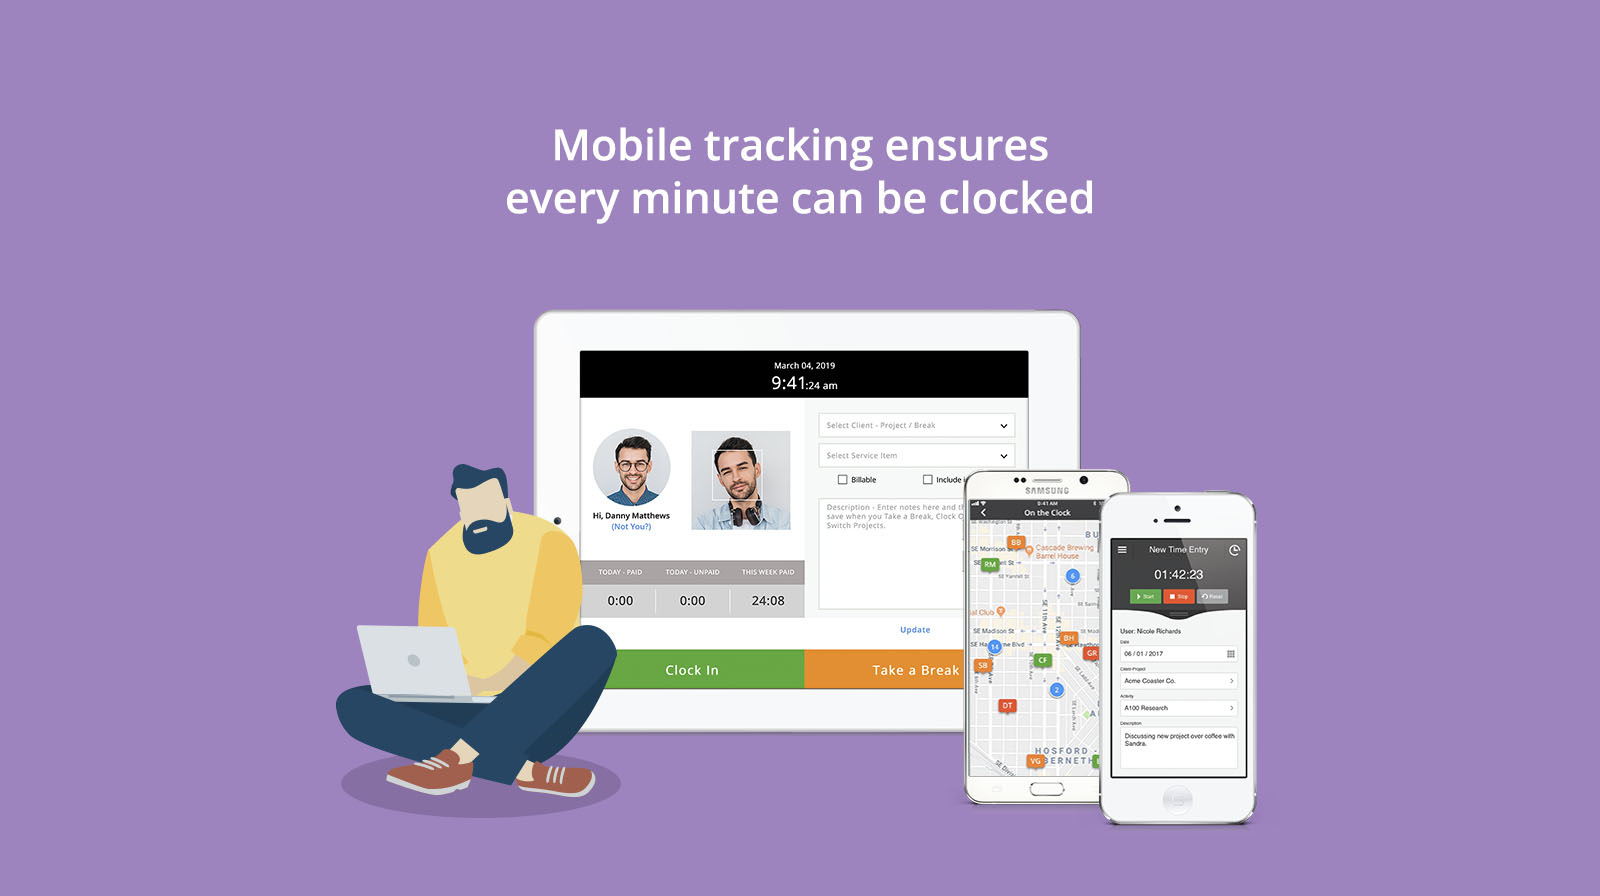 mobile tracking